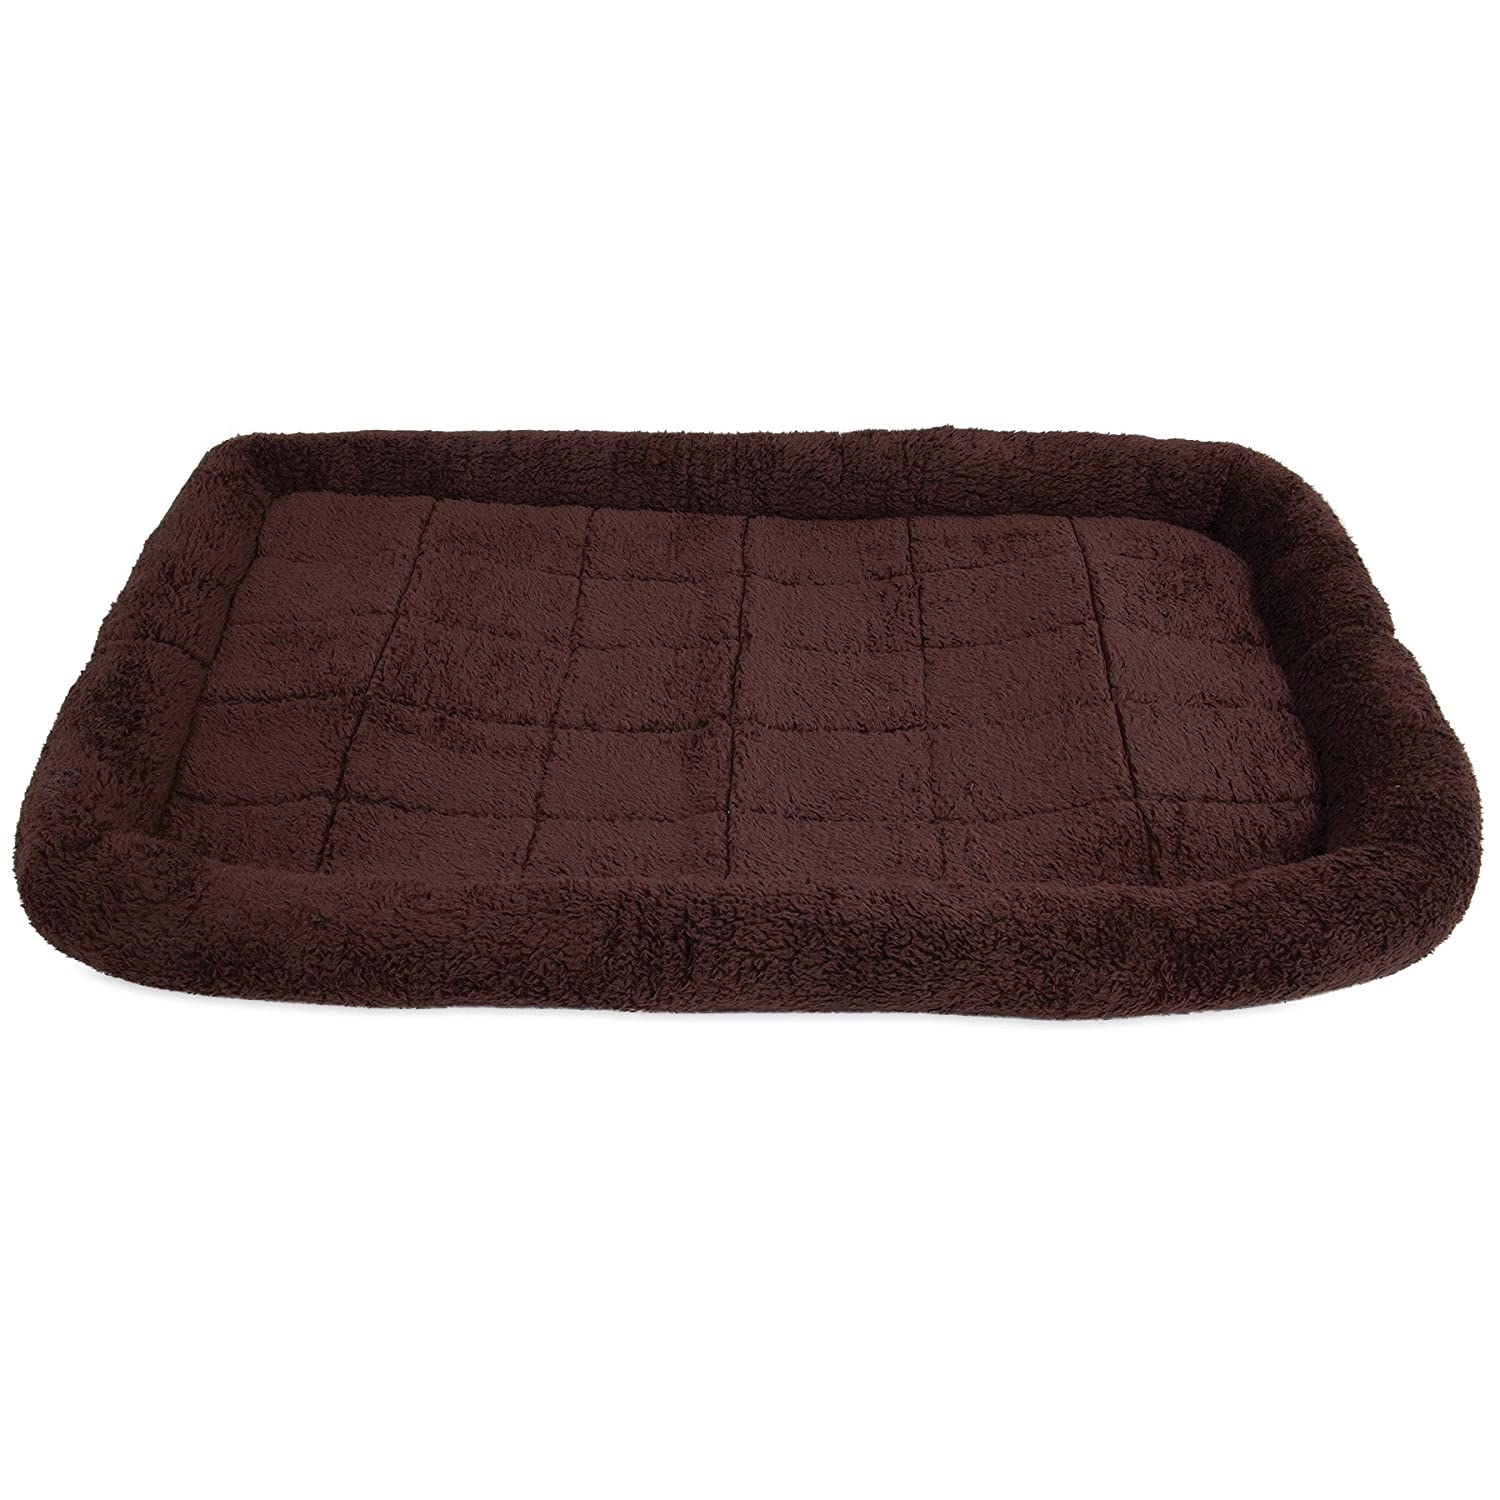 Chocolate Large Chocolate Large Precision Pet SnooZZy Crate Bed 5000, 45-Inch x 32-Inch, Chocolate Cozy